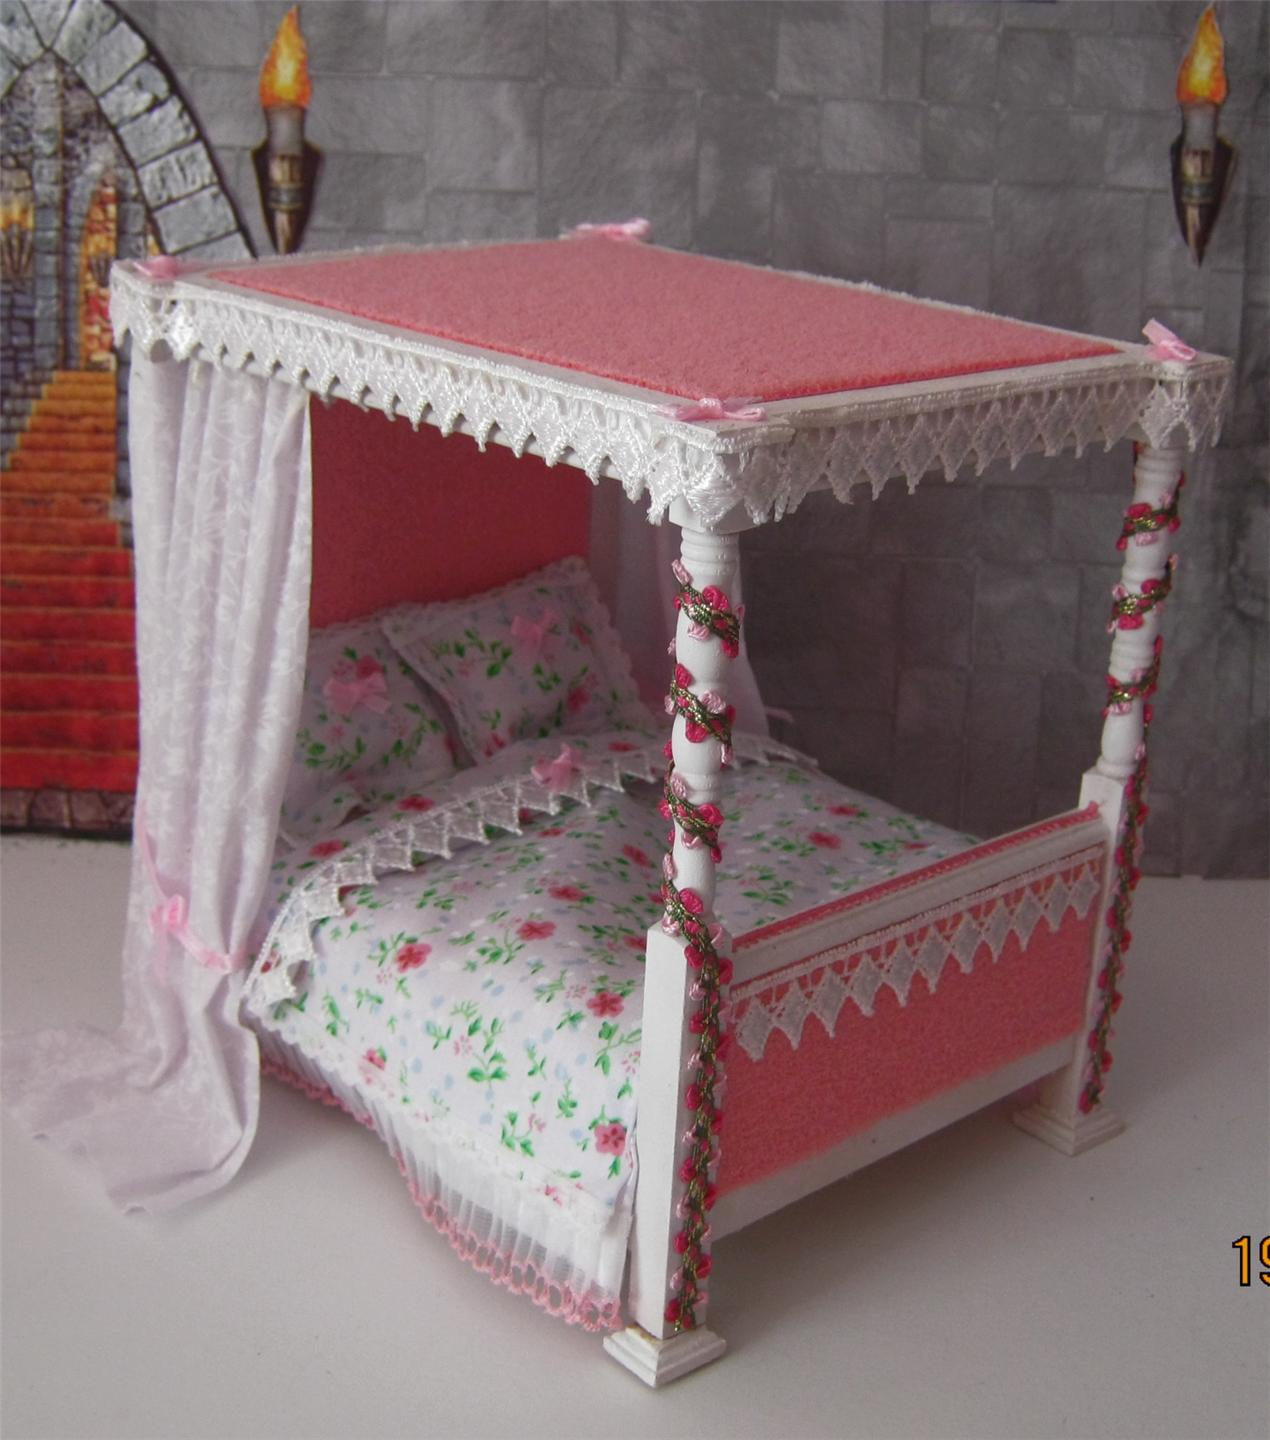 Doll House Castle Fantasy Princess Fairytale 4 Poster Bed